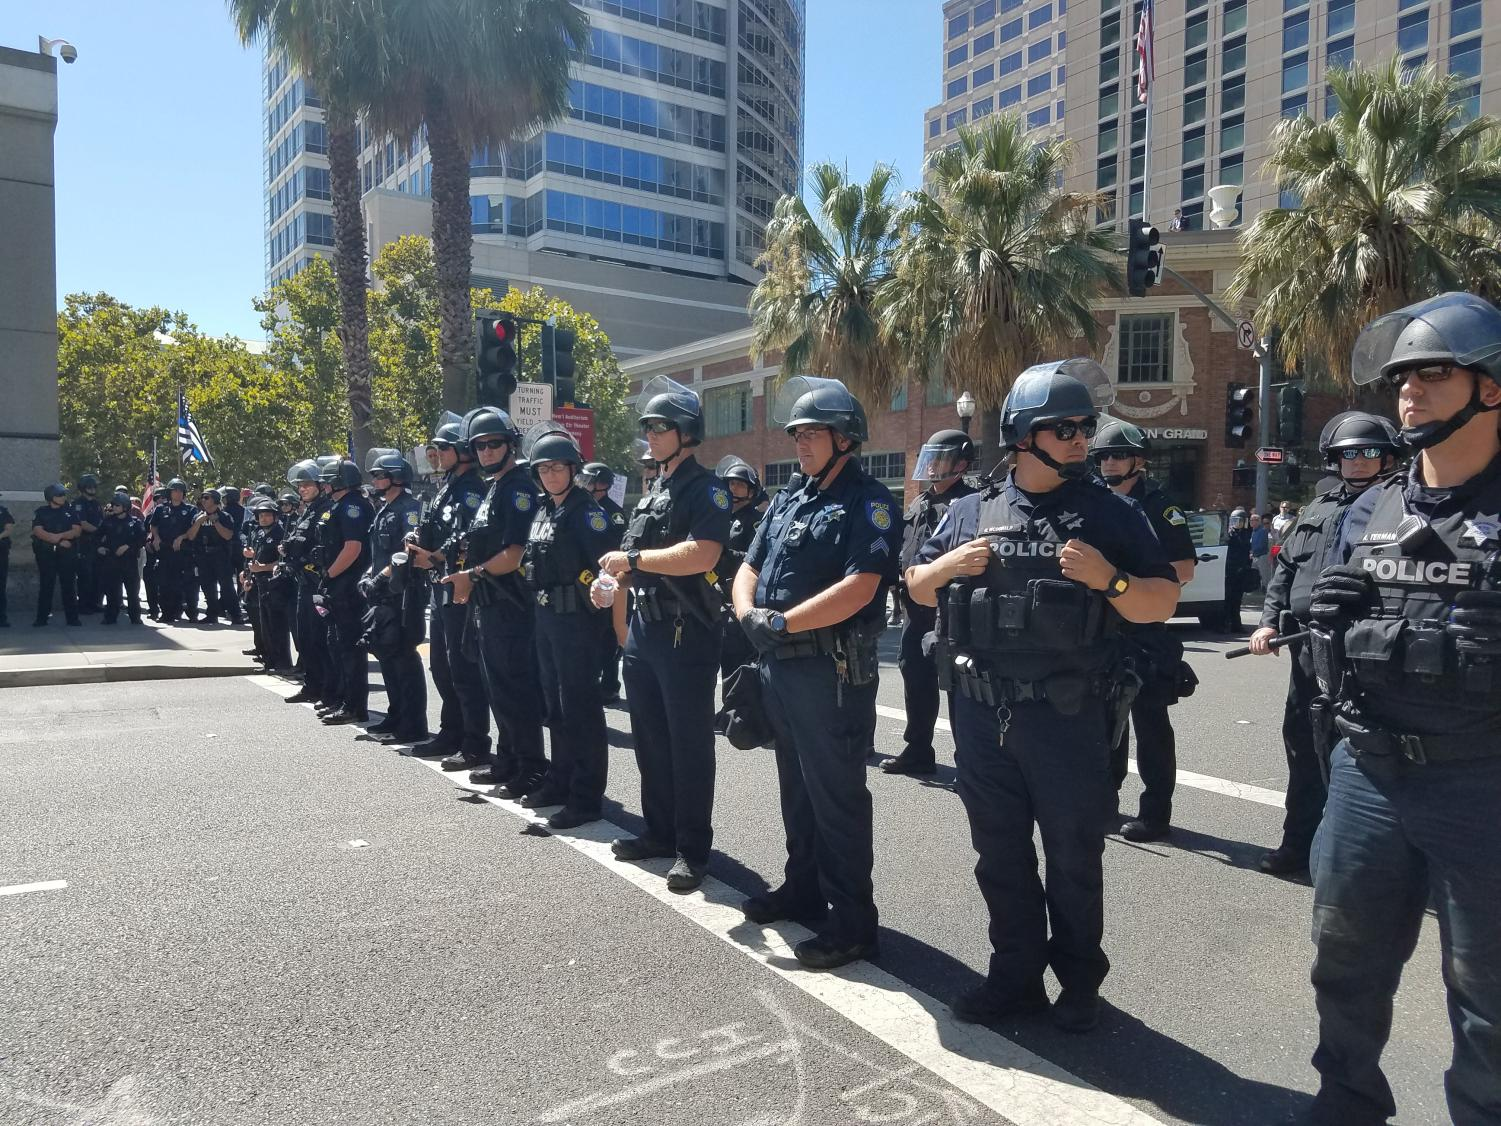 Sacramento+police+form+a+barricade+to+block+of+an+intersection+on+J+street+in+response+to+activists+protesting+in+front+of+the+Sacramento+Convention+Center+on+Sept.+18.+Activists+gathered+to+protest+the+California+Police+Officers+Association%27s+statewide+gathering%2C+which+happened+to+land+on+the+6+month+anniversary+of+the+shooting+of+Stephon+Clark.++